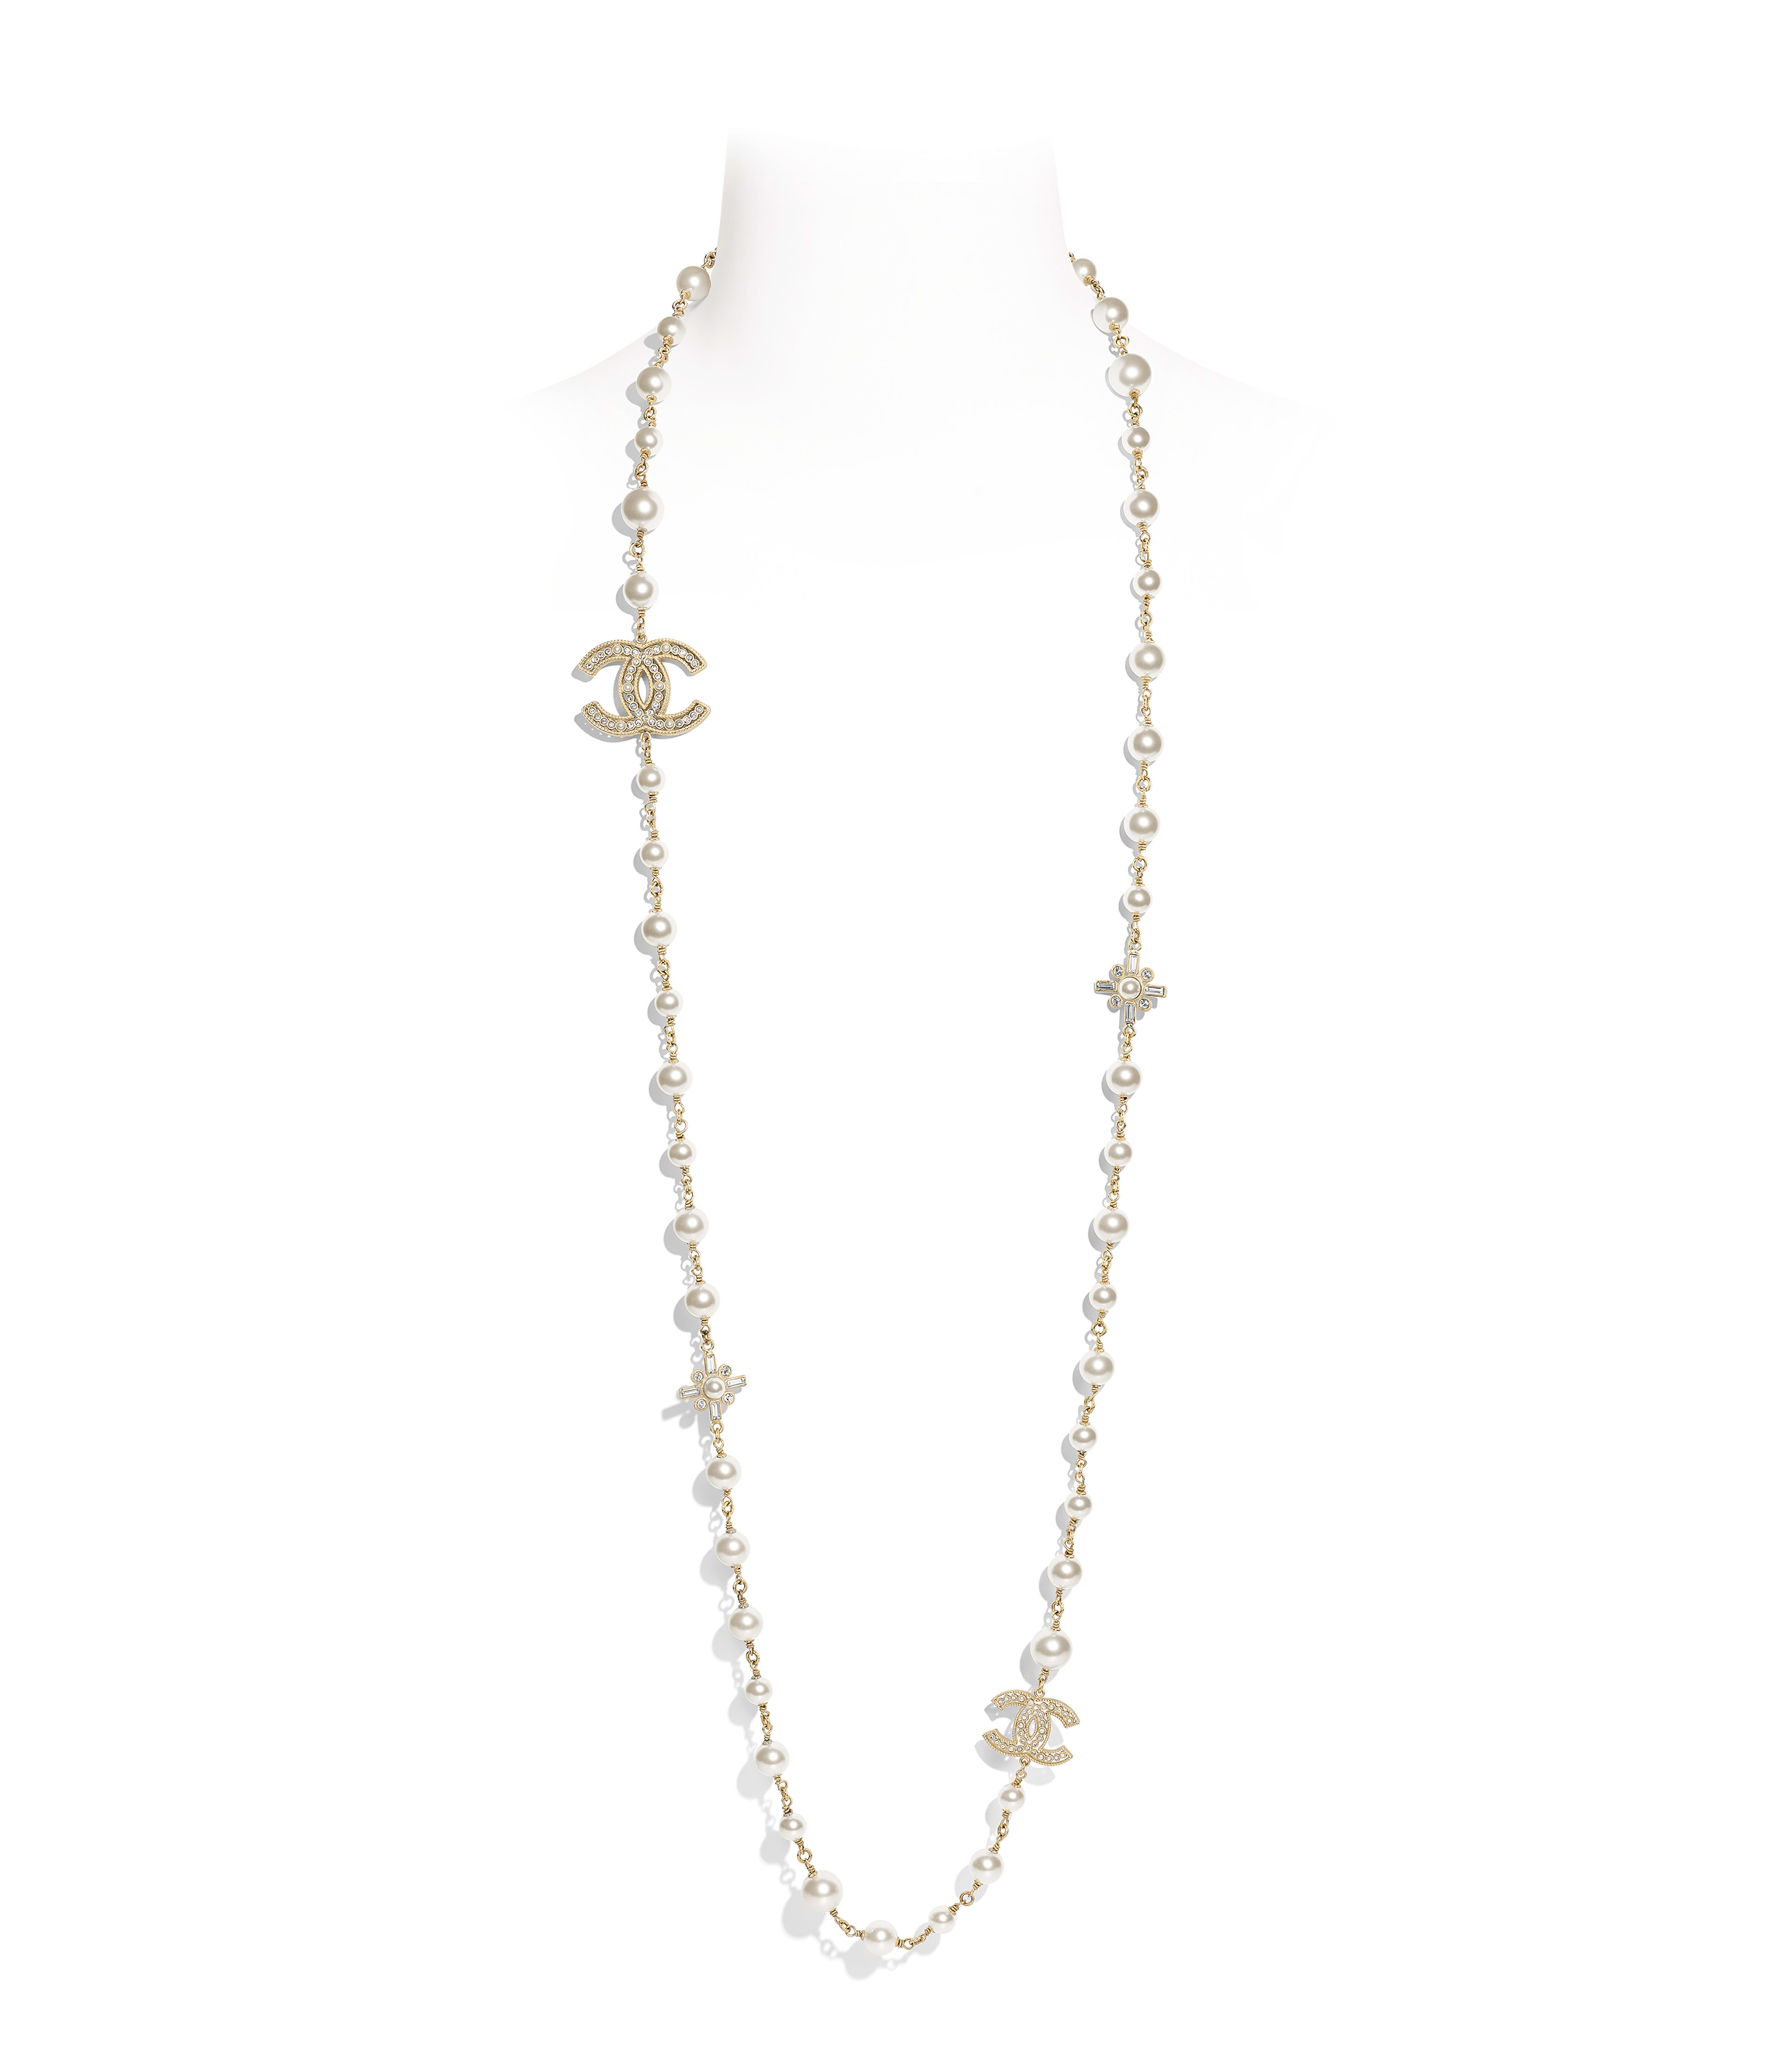 1029cb3fed Necklaces - Costume jewelry | CHANEL